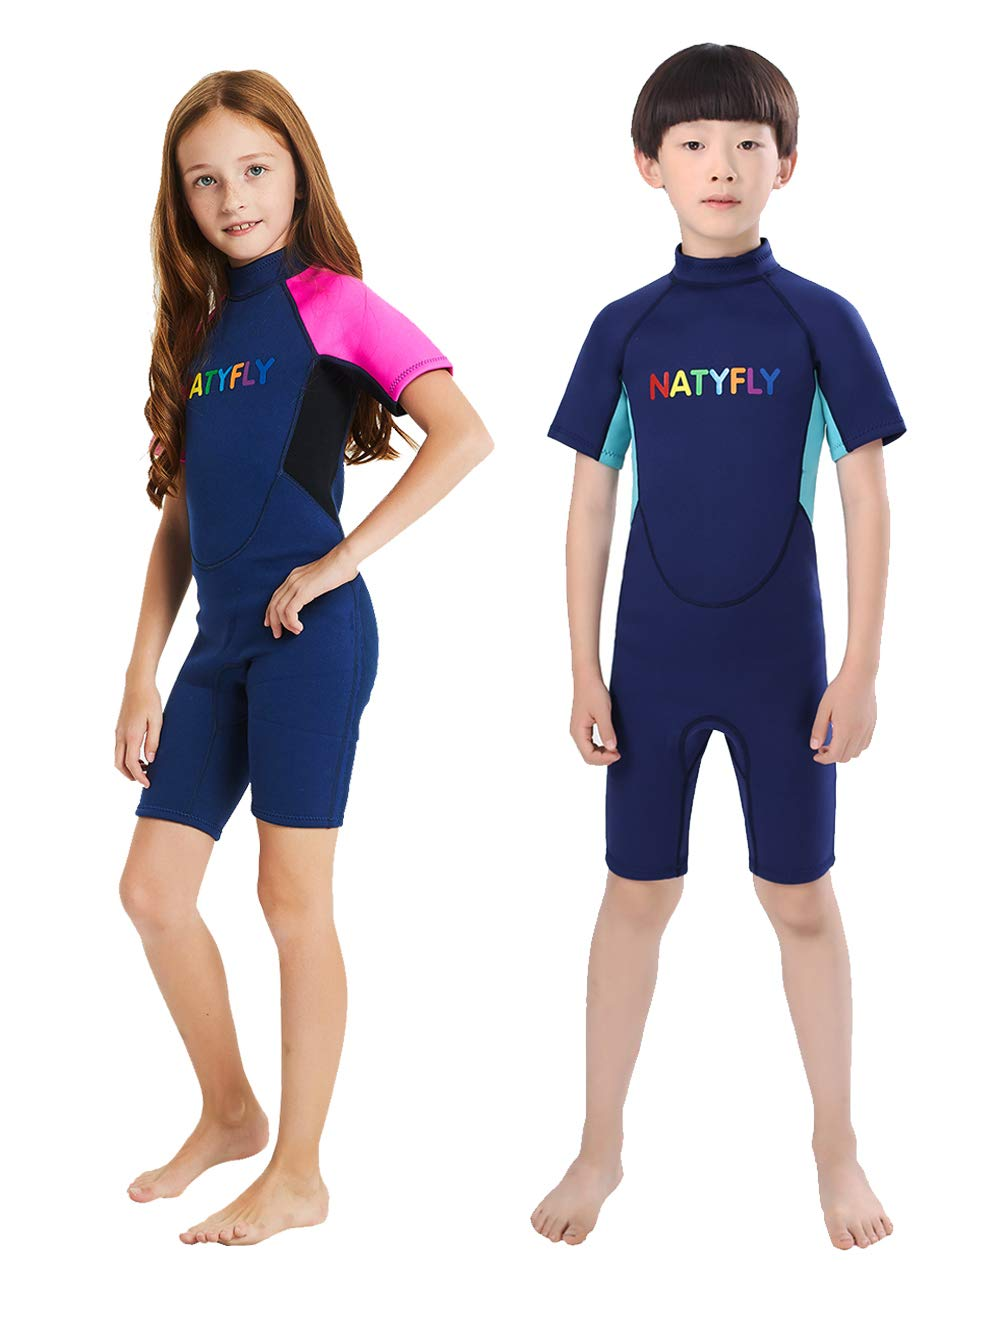 NATYFLY Kids Wetsuit Premium 2mm Neoprene Short Sleeve Youth Shorty Wetsuit for Girls Boys Child (Blue, 3X-Large) by NATYFLY